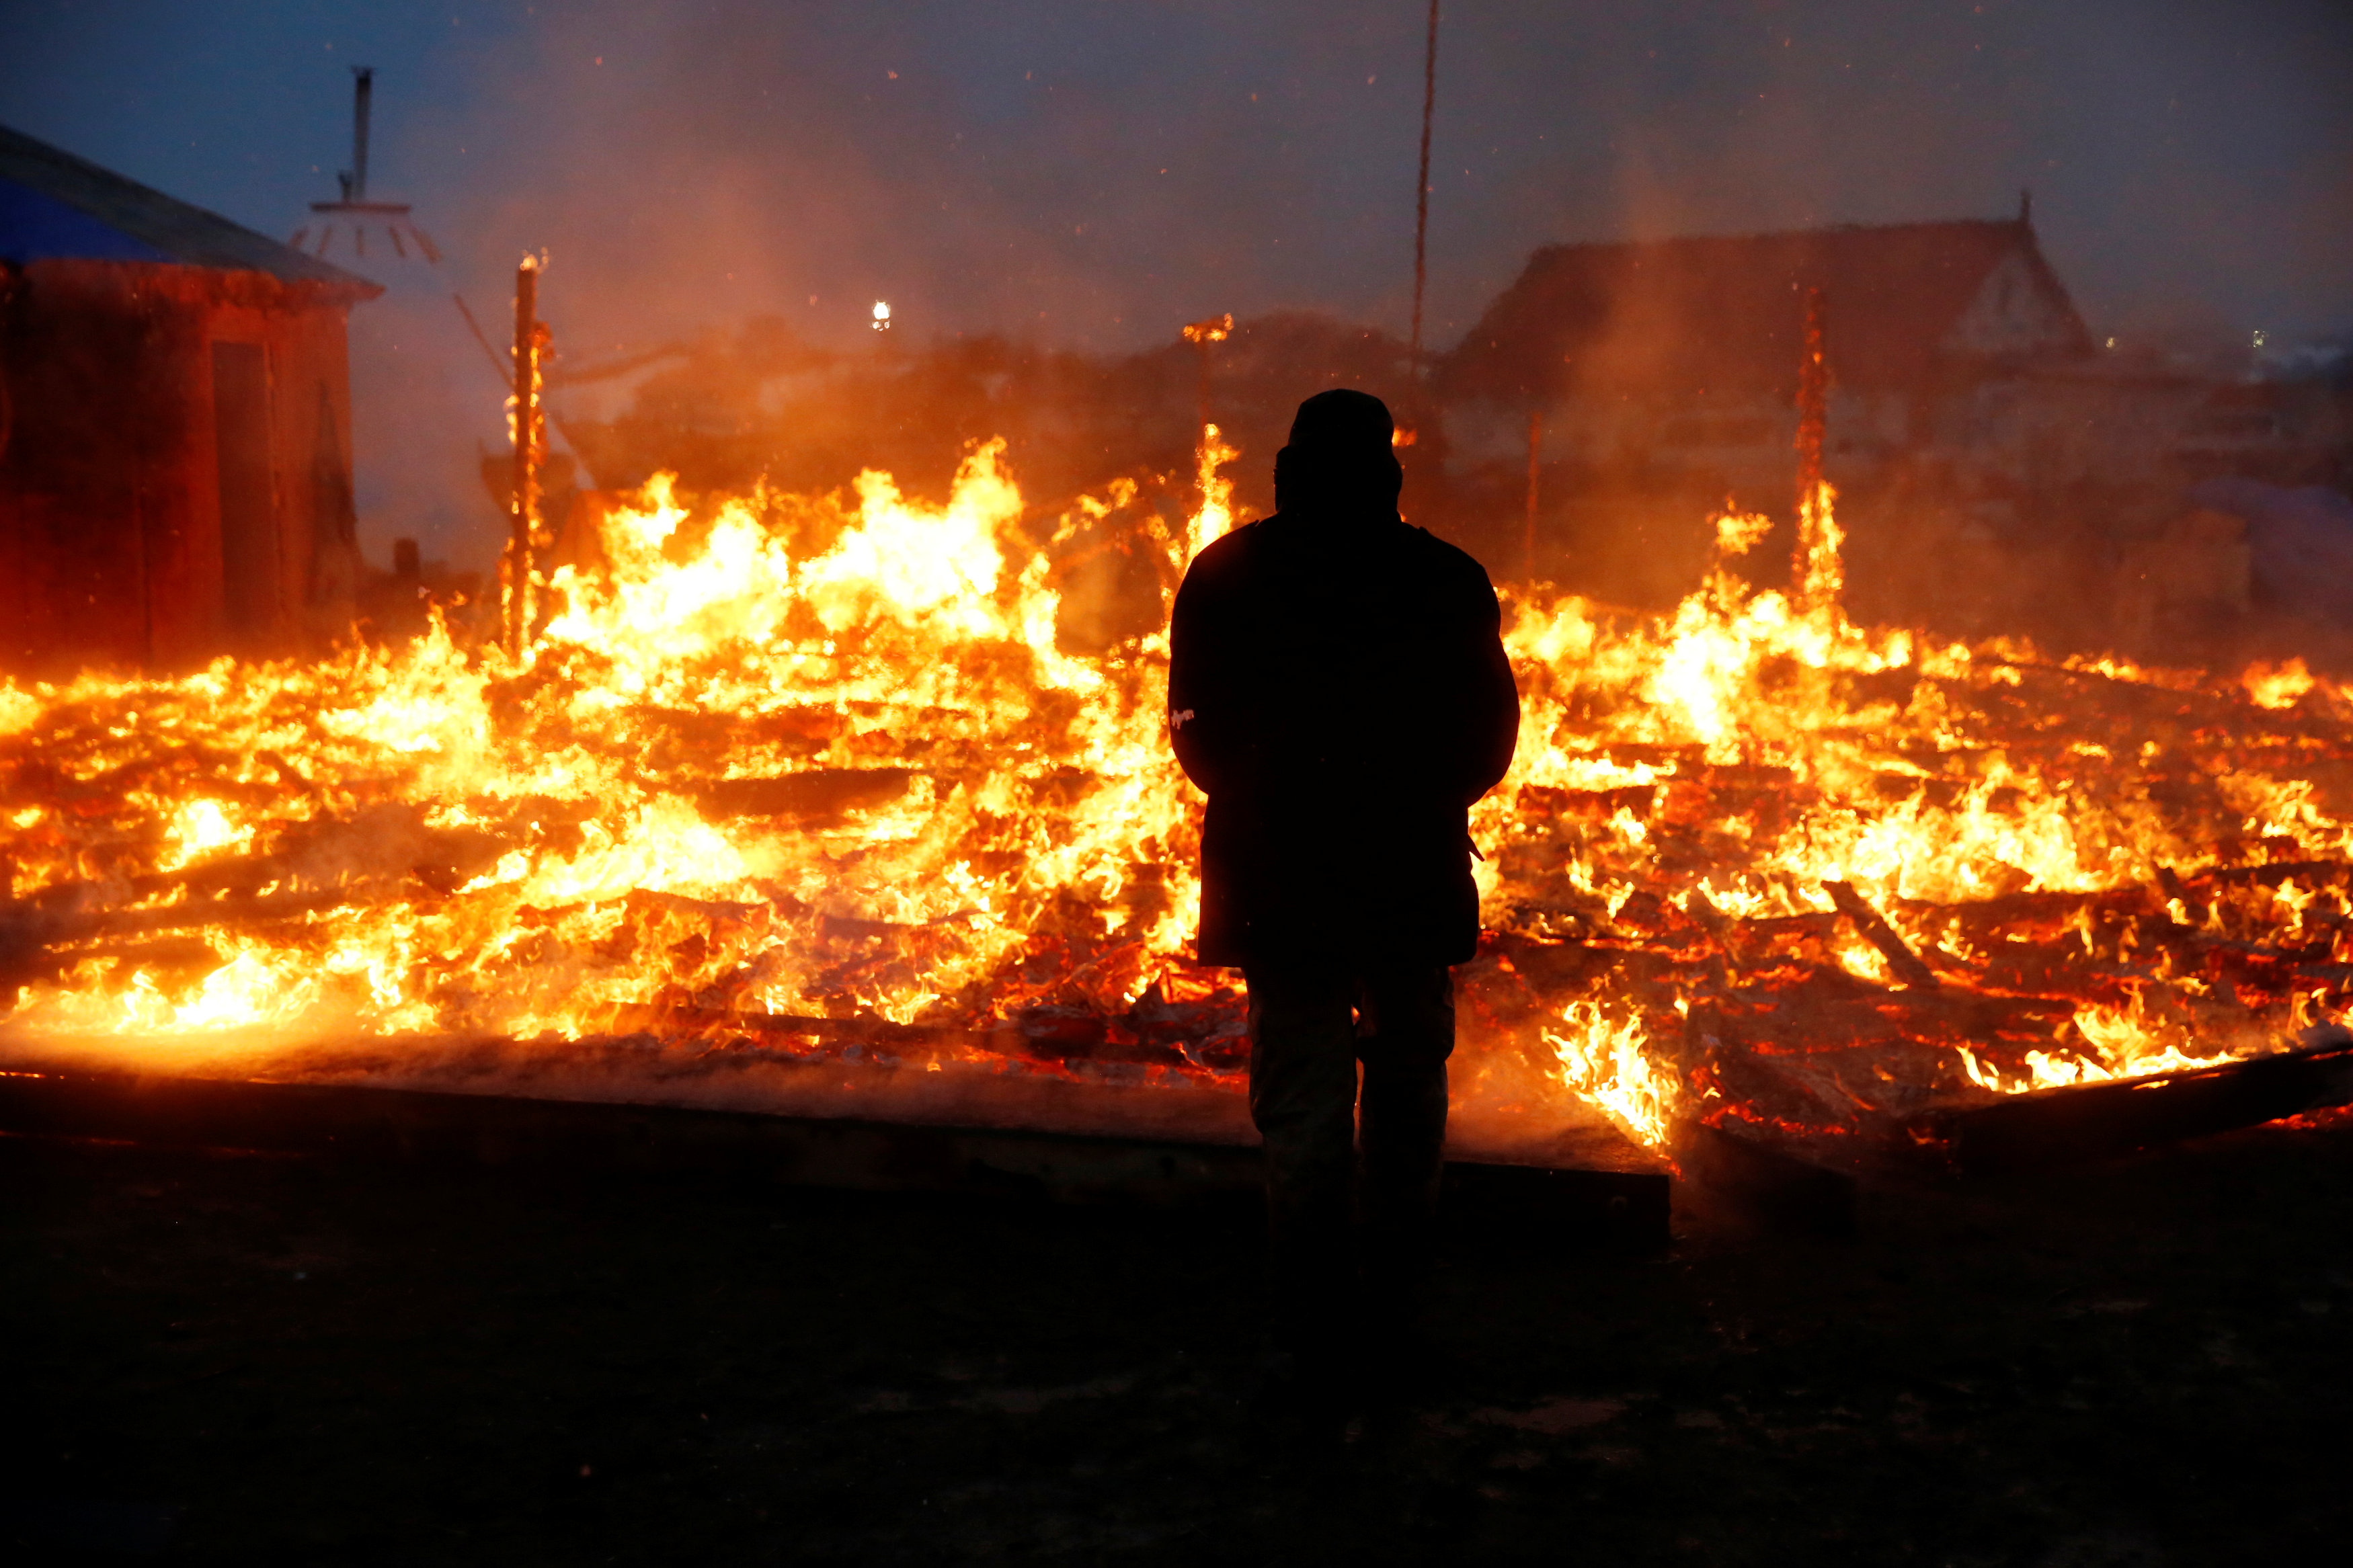 An opponent of the Dakota Access oil pipeline watches a building burn after it was set alight by protesters preparing to evacuate the main opposition camp against the pipeline near Cannon Ball, North Dakota, S, February 22, 2017. Credit: Terray Sylvester/Reuters